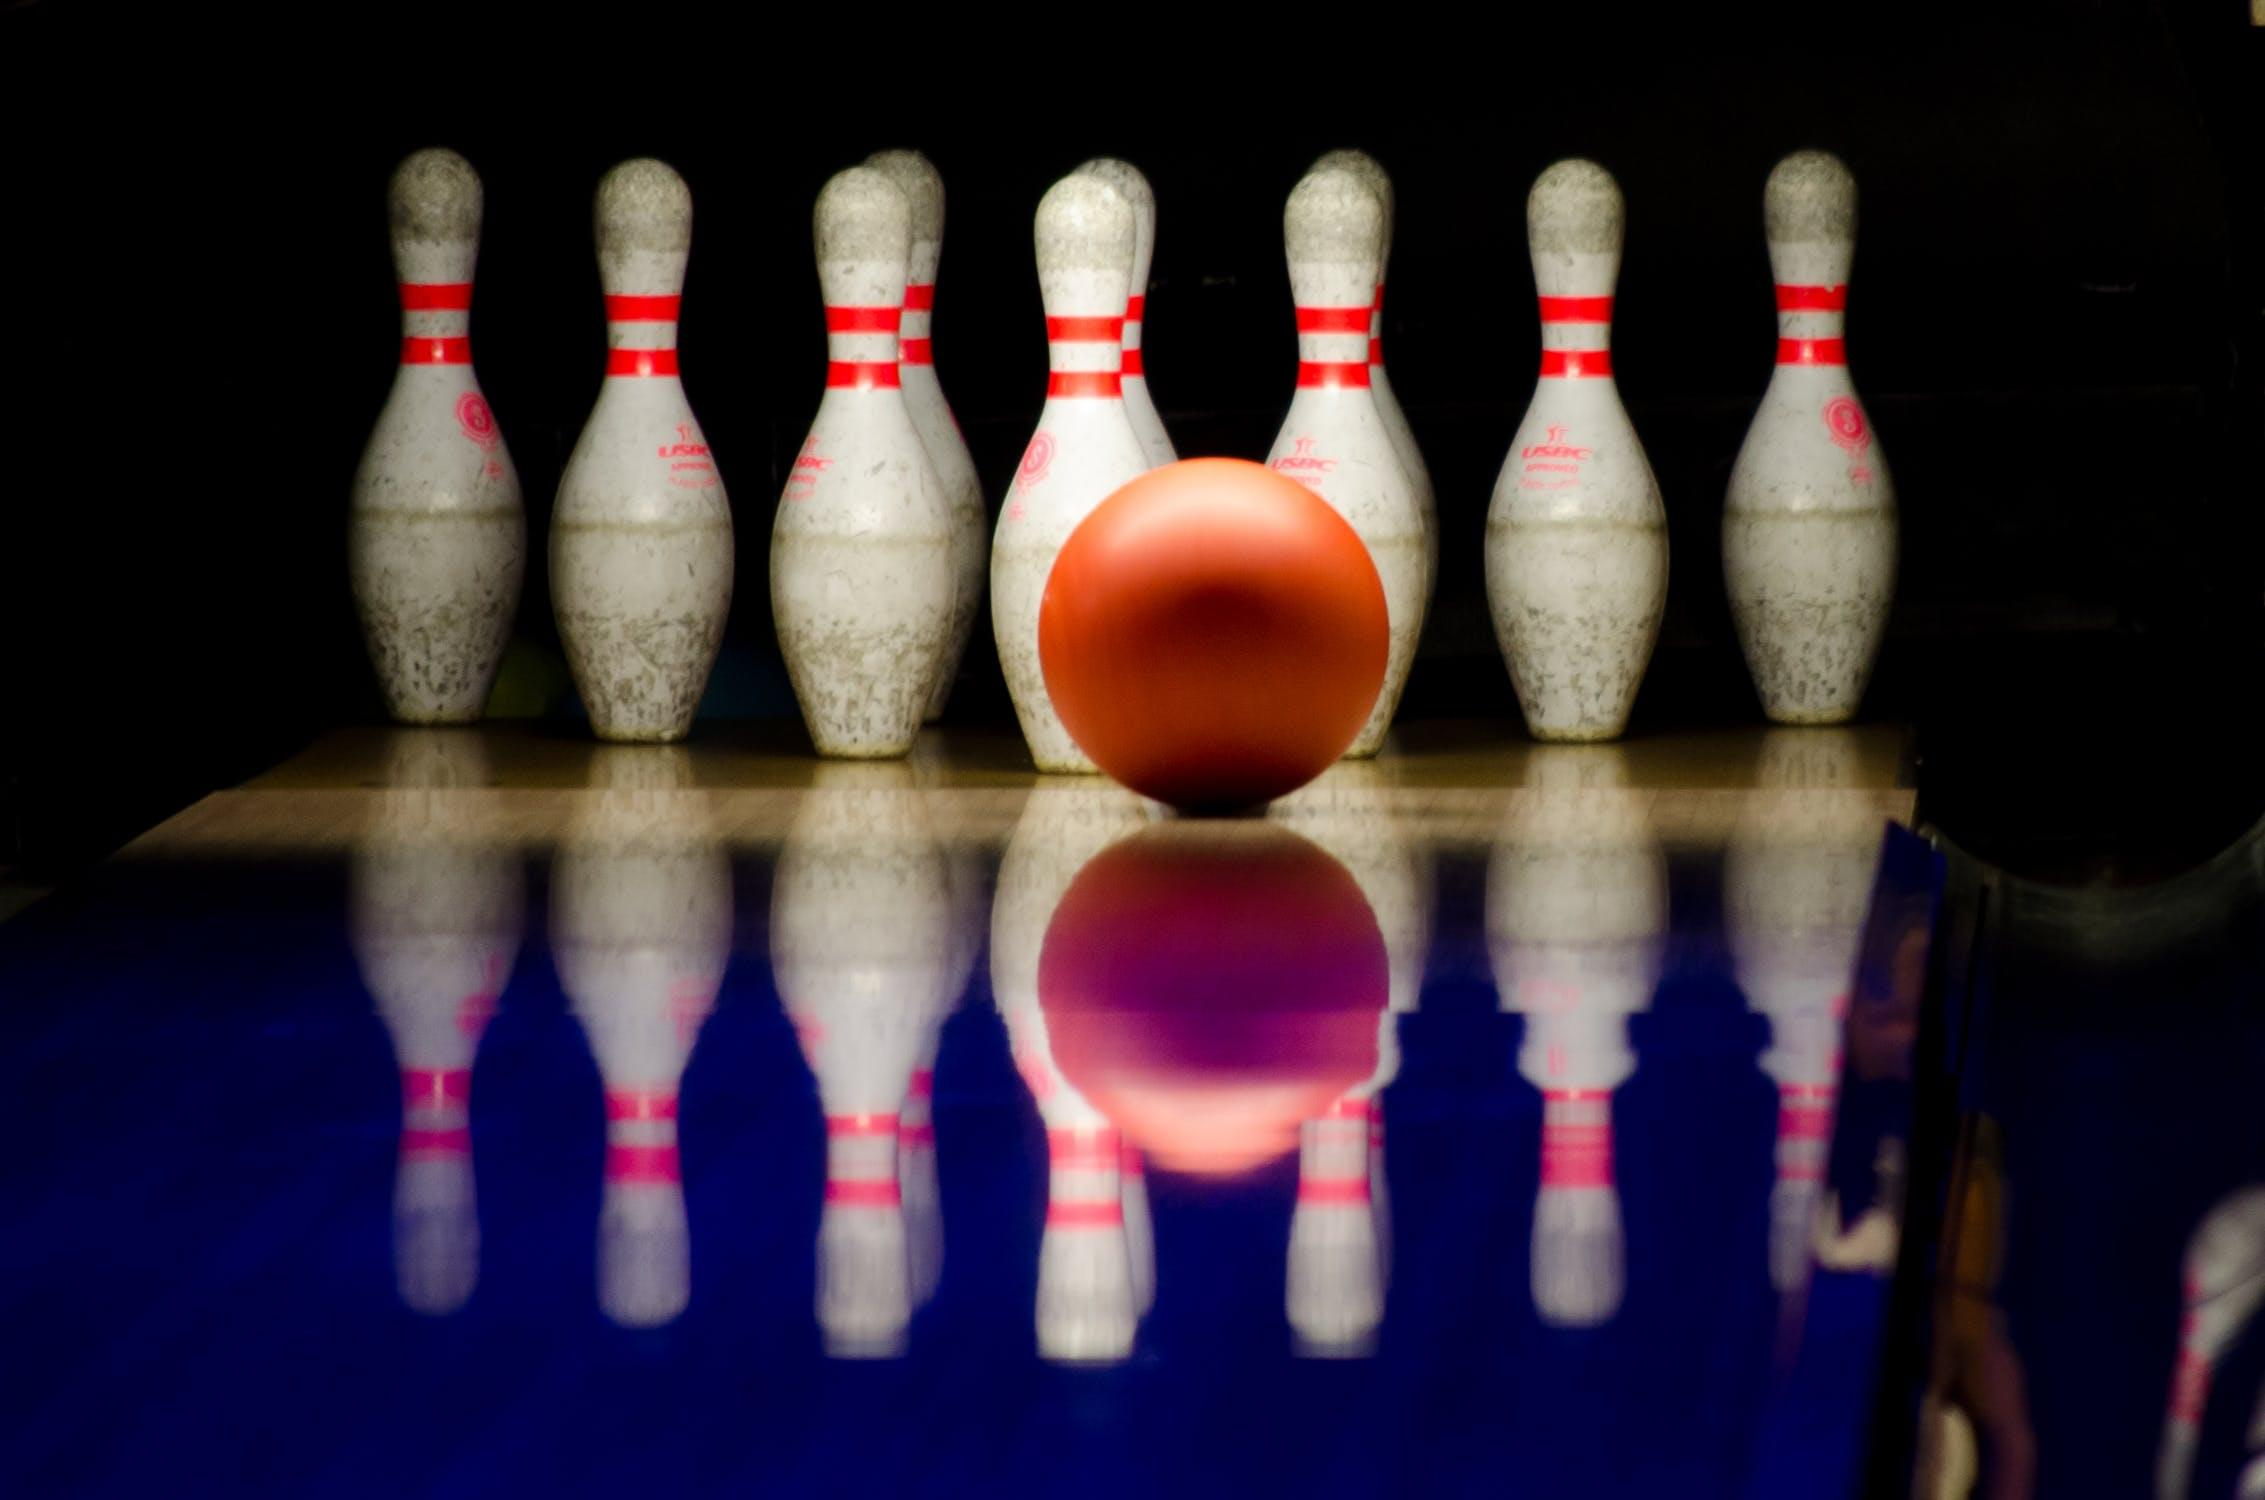 60th annual Syracuse men's Masters Bowling Tournament | February 27th